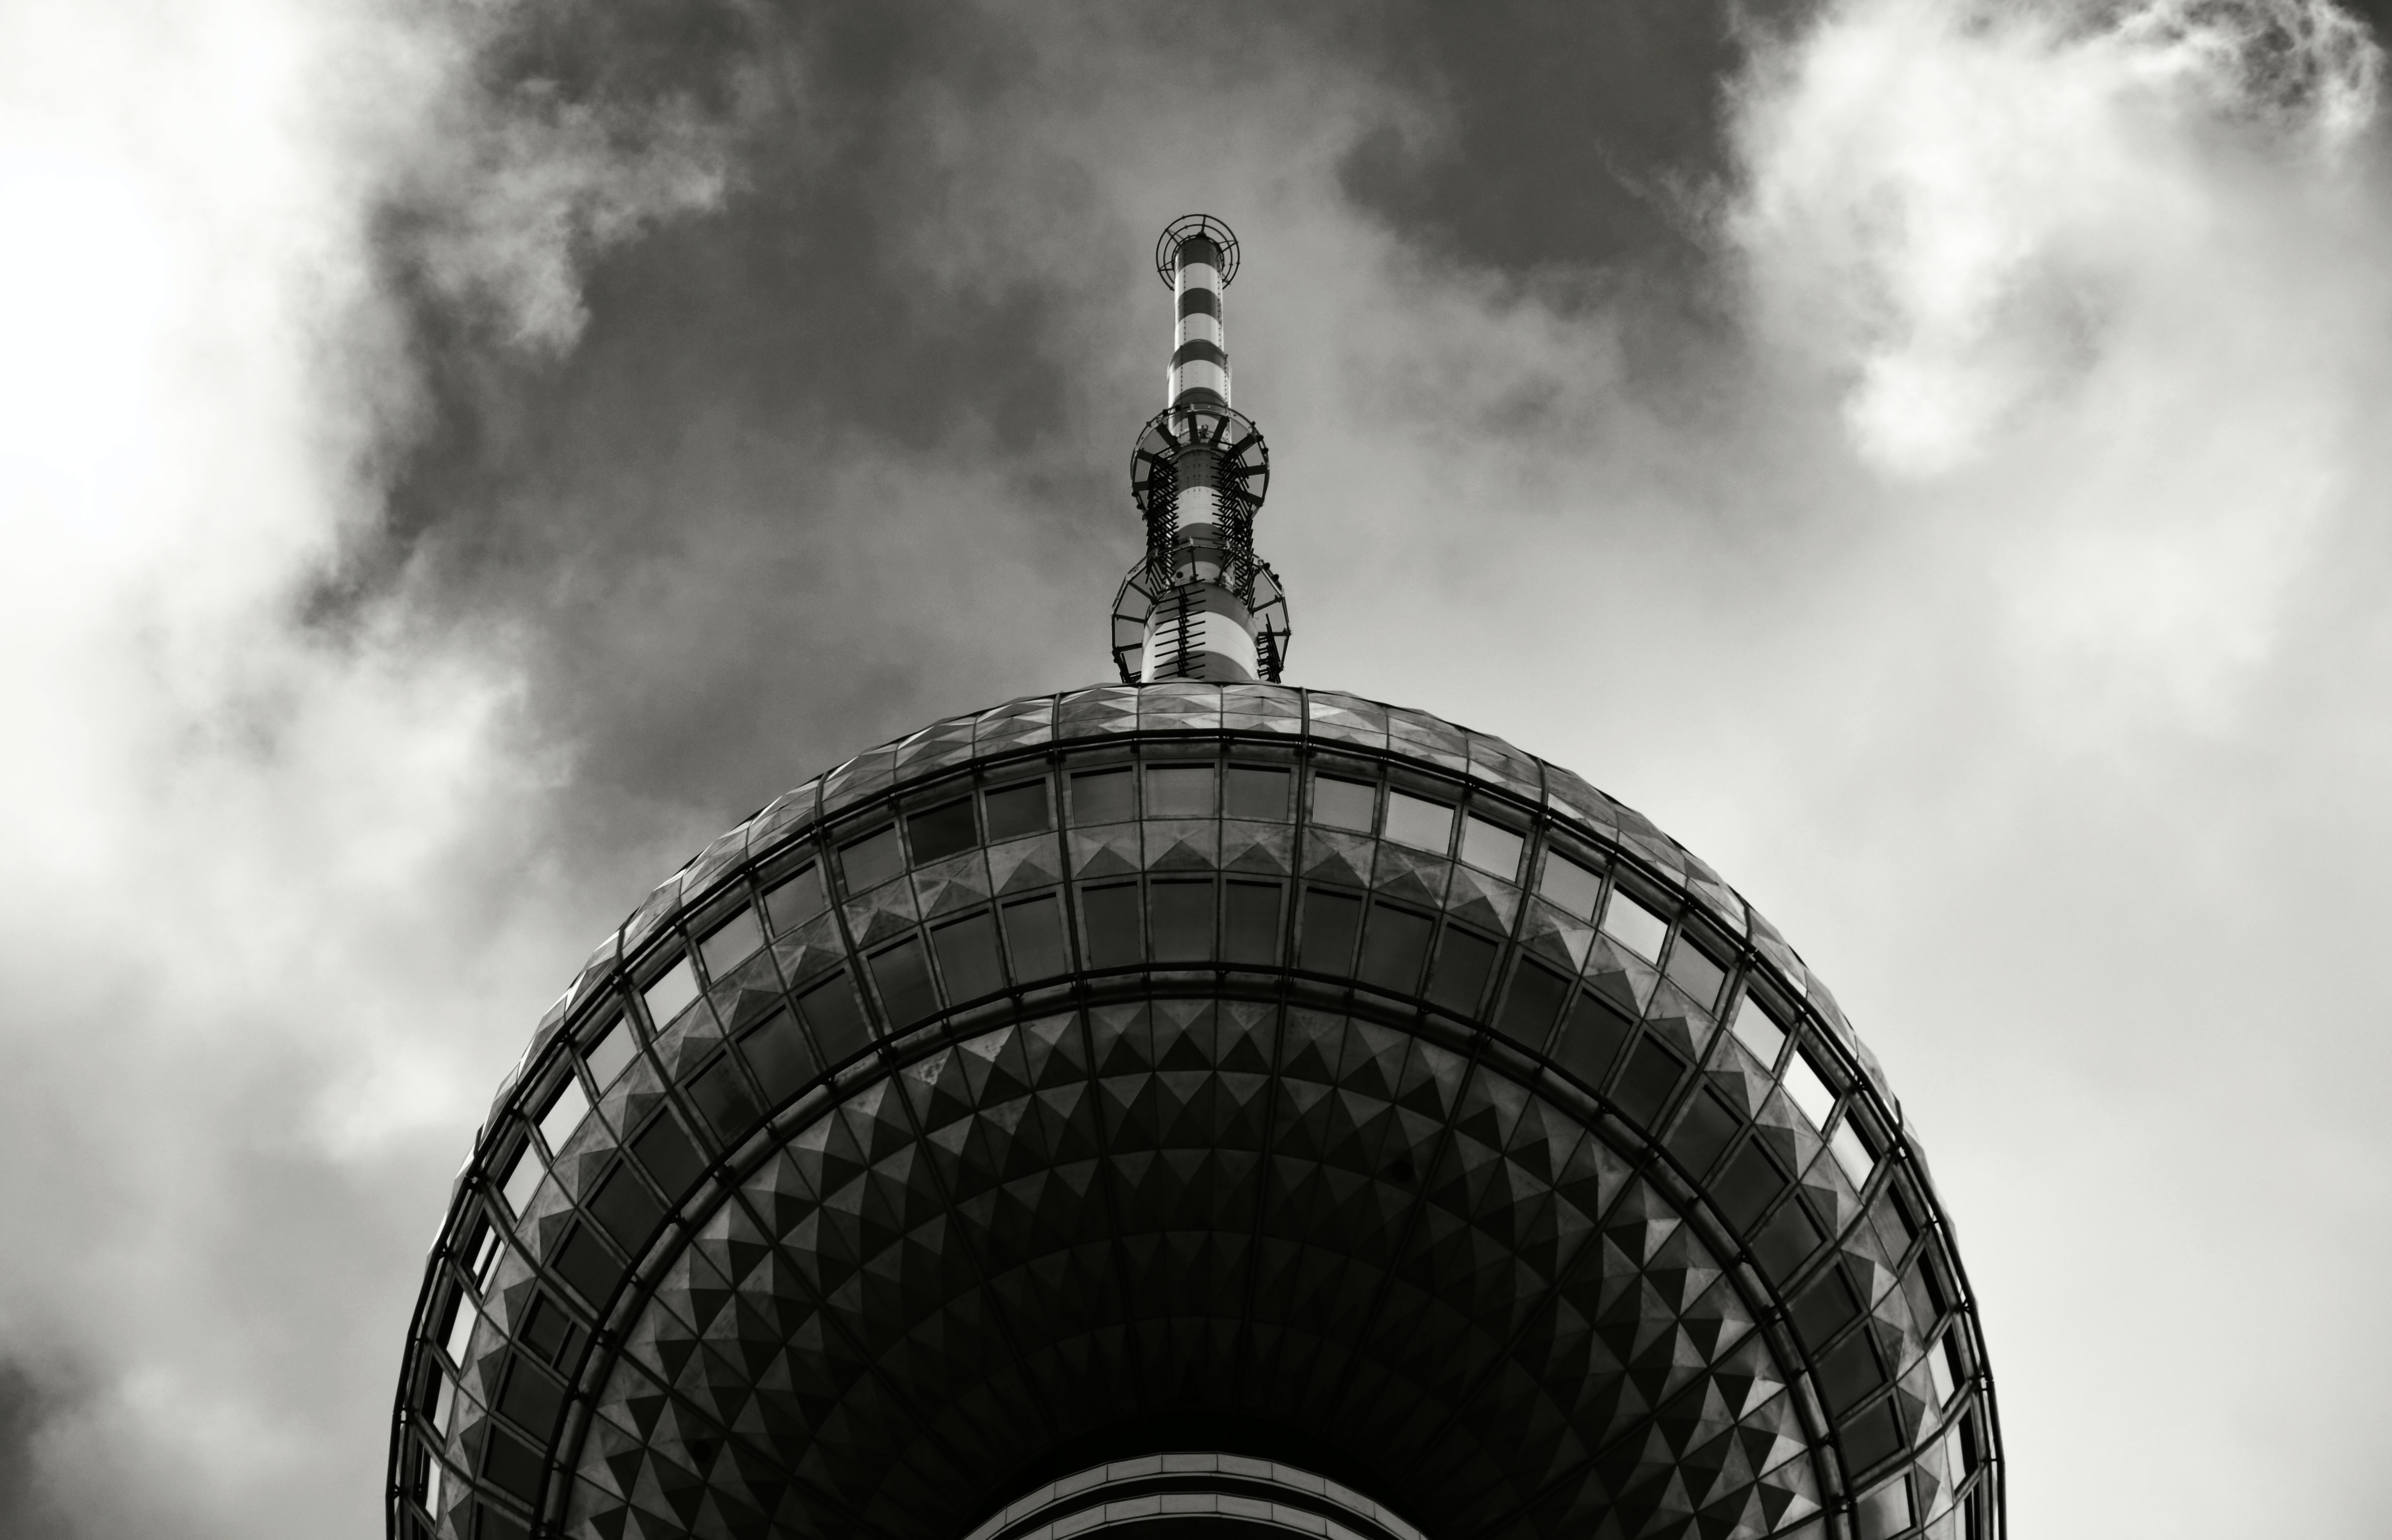 Black and white shot of modern tower from below with spire and clouds